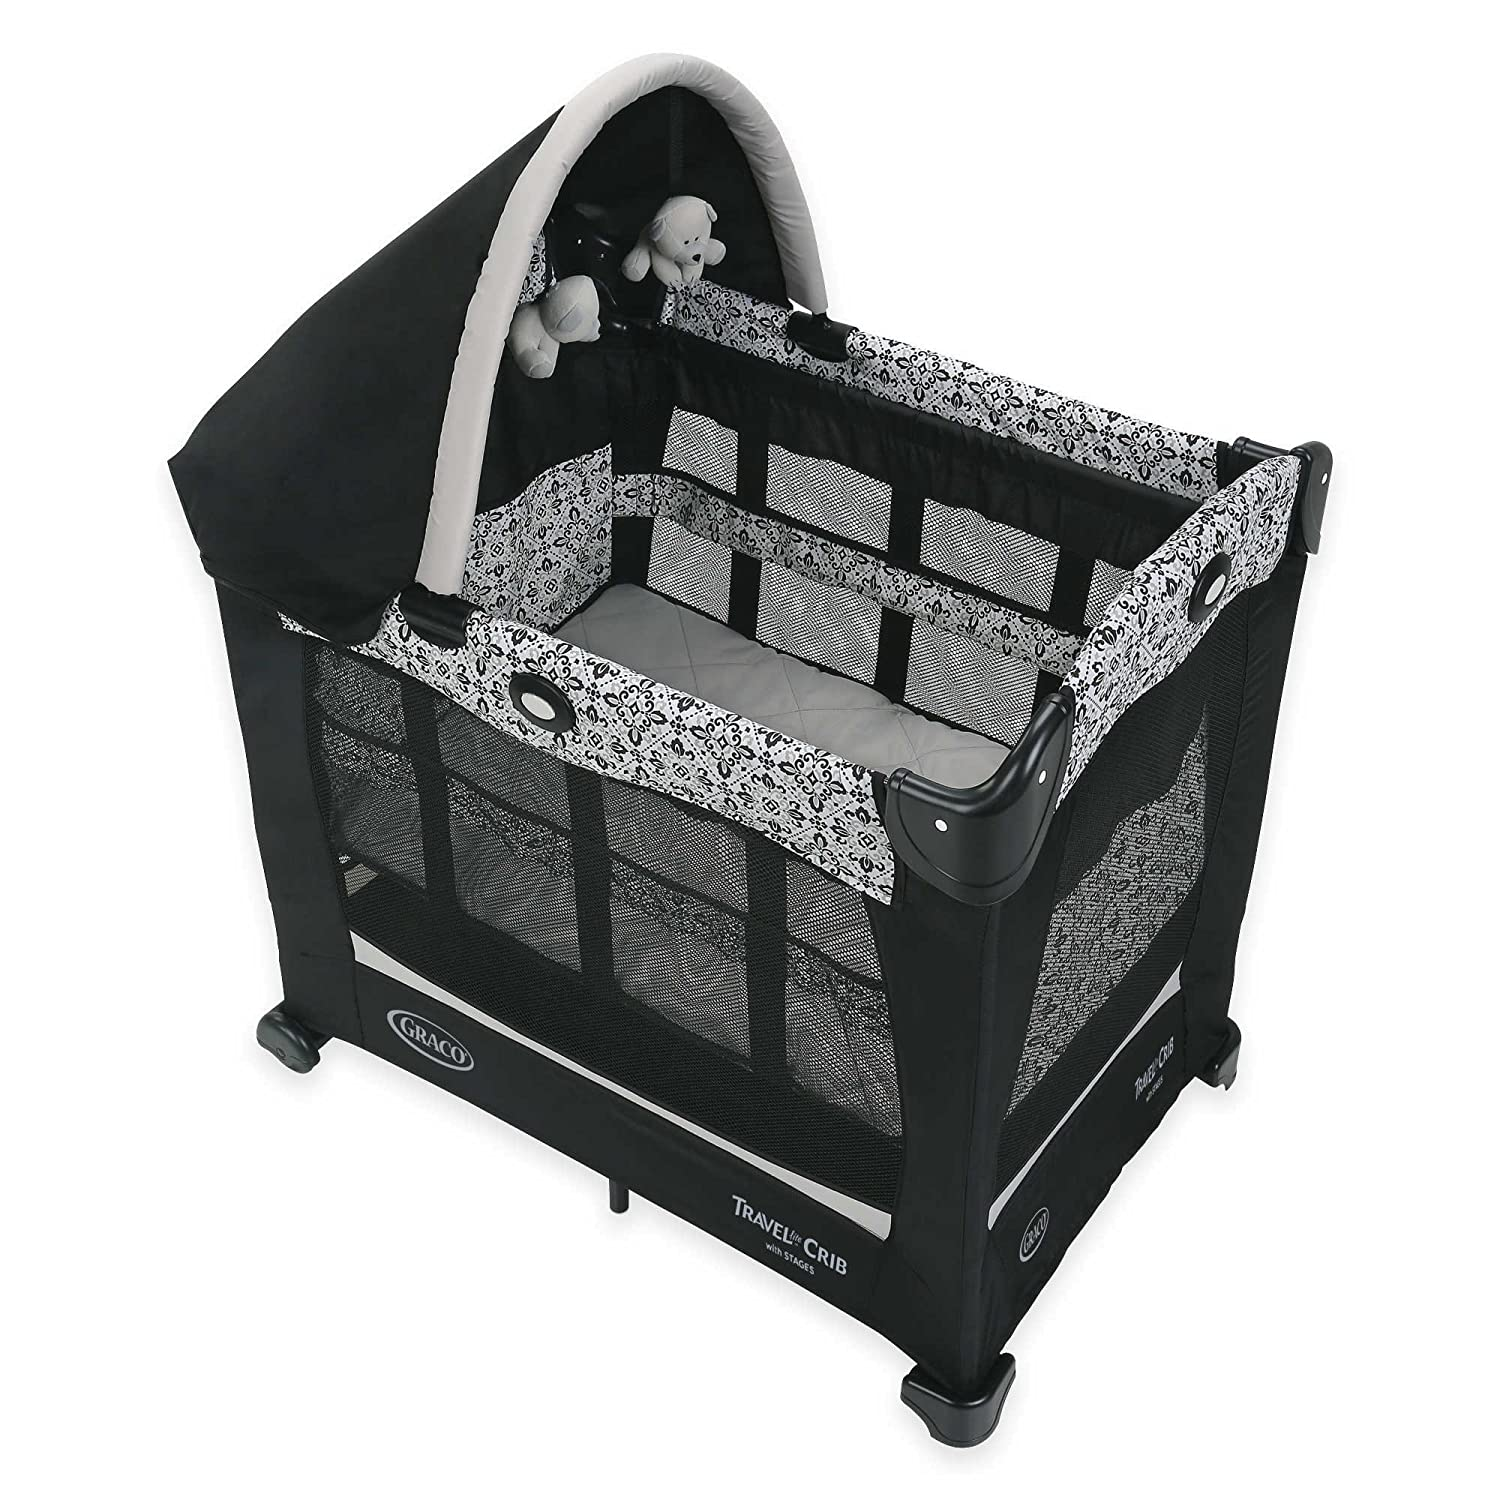 Amazon Travel Lite Crib With Stages In Sutton And 2 Level Bassinet Height Adjustment Includes Carry Bag Canopy Features Soft Hanging Toys